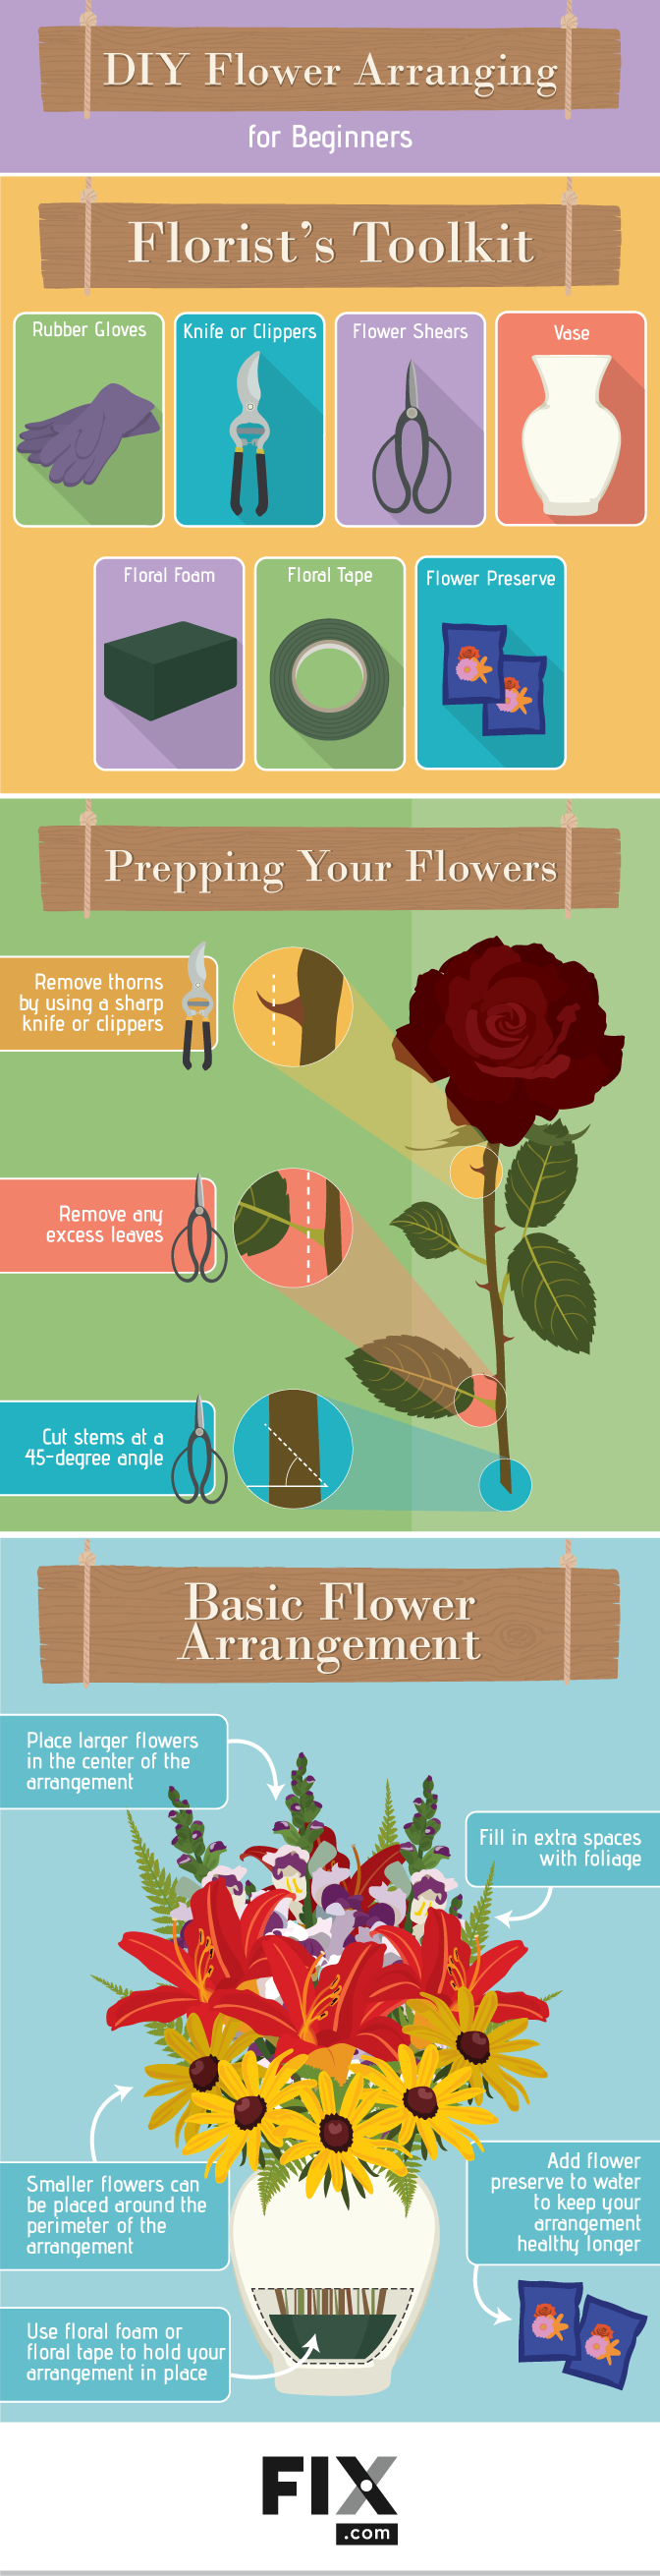 Flower Arranging for Beginners #infographic